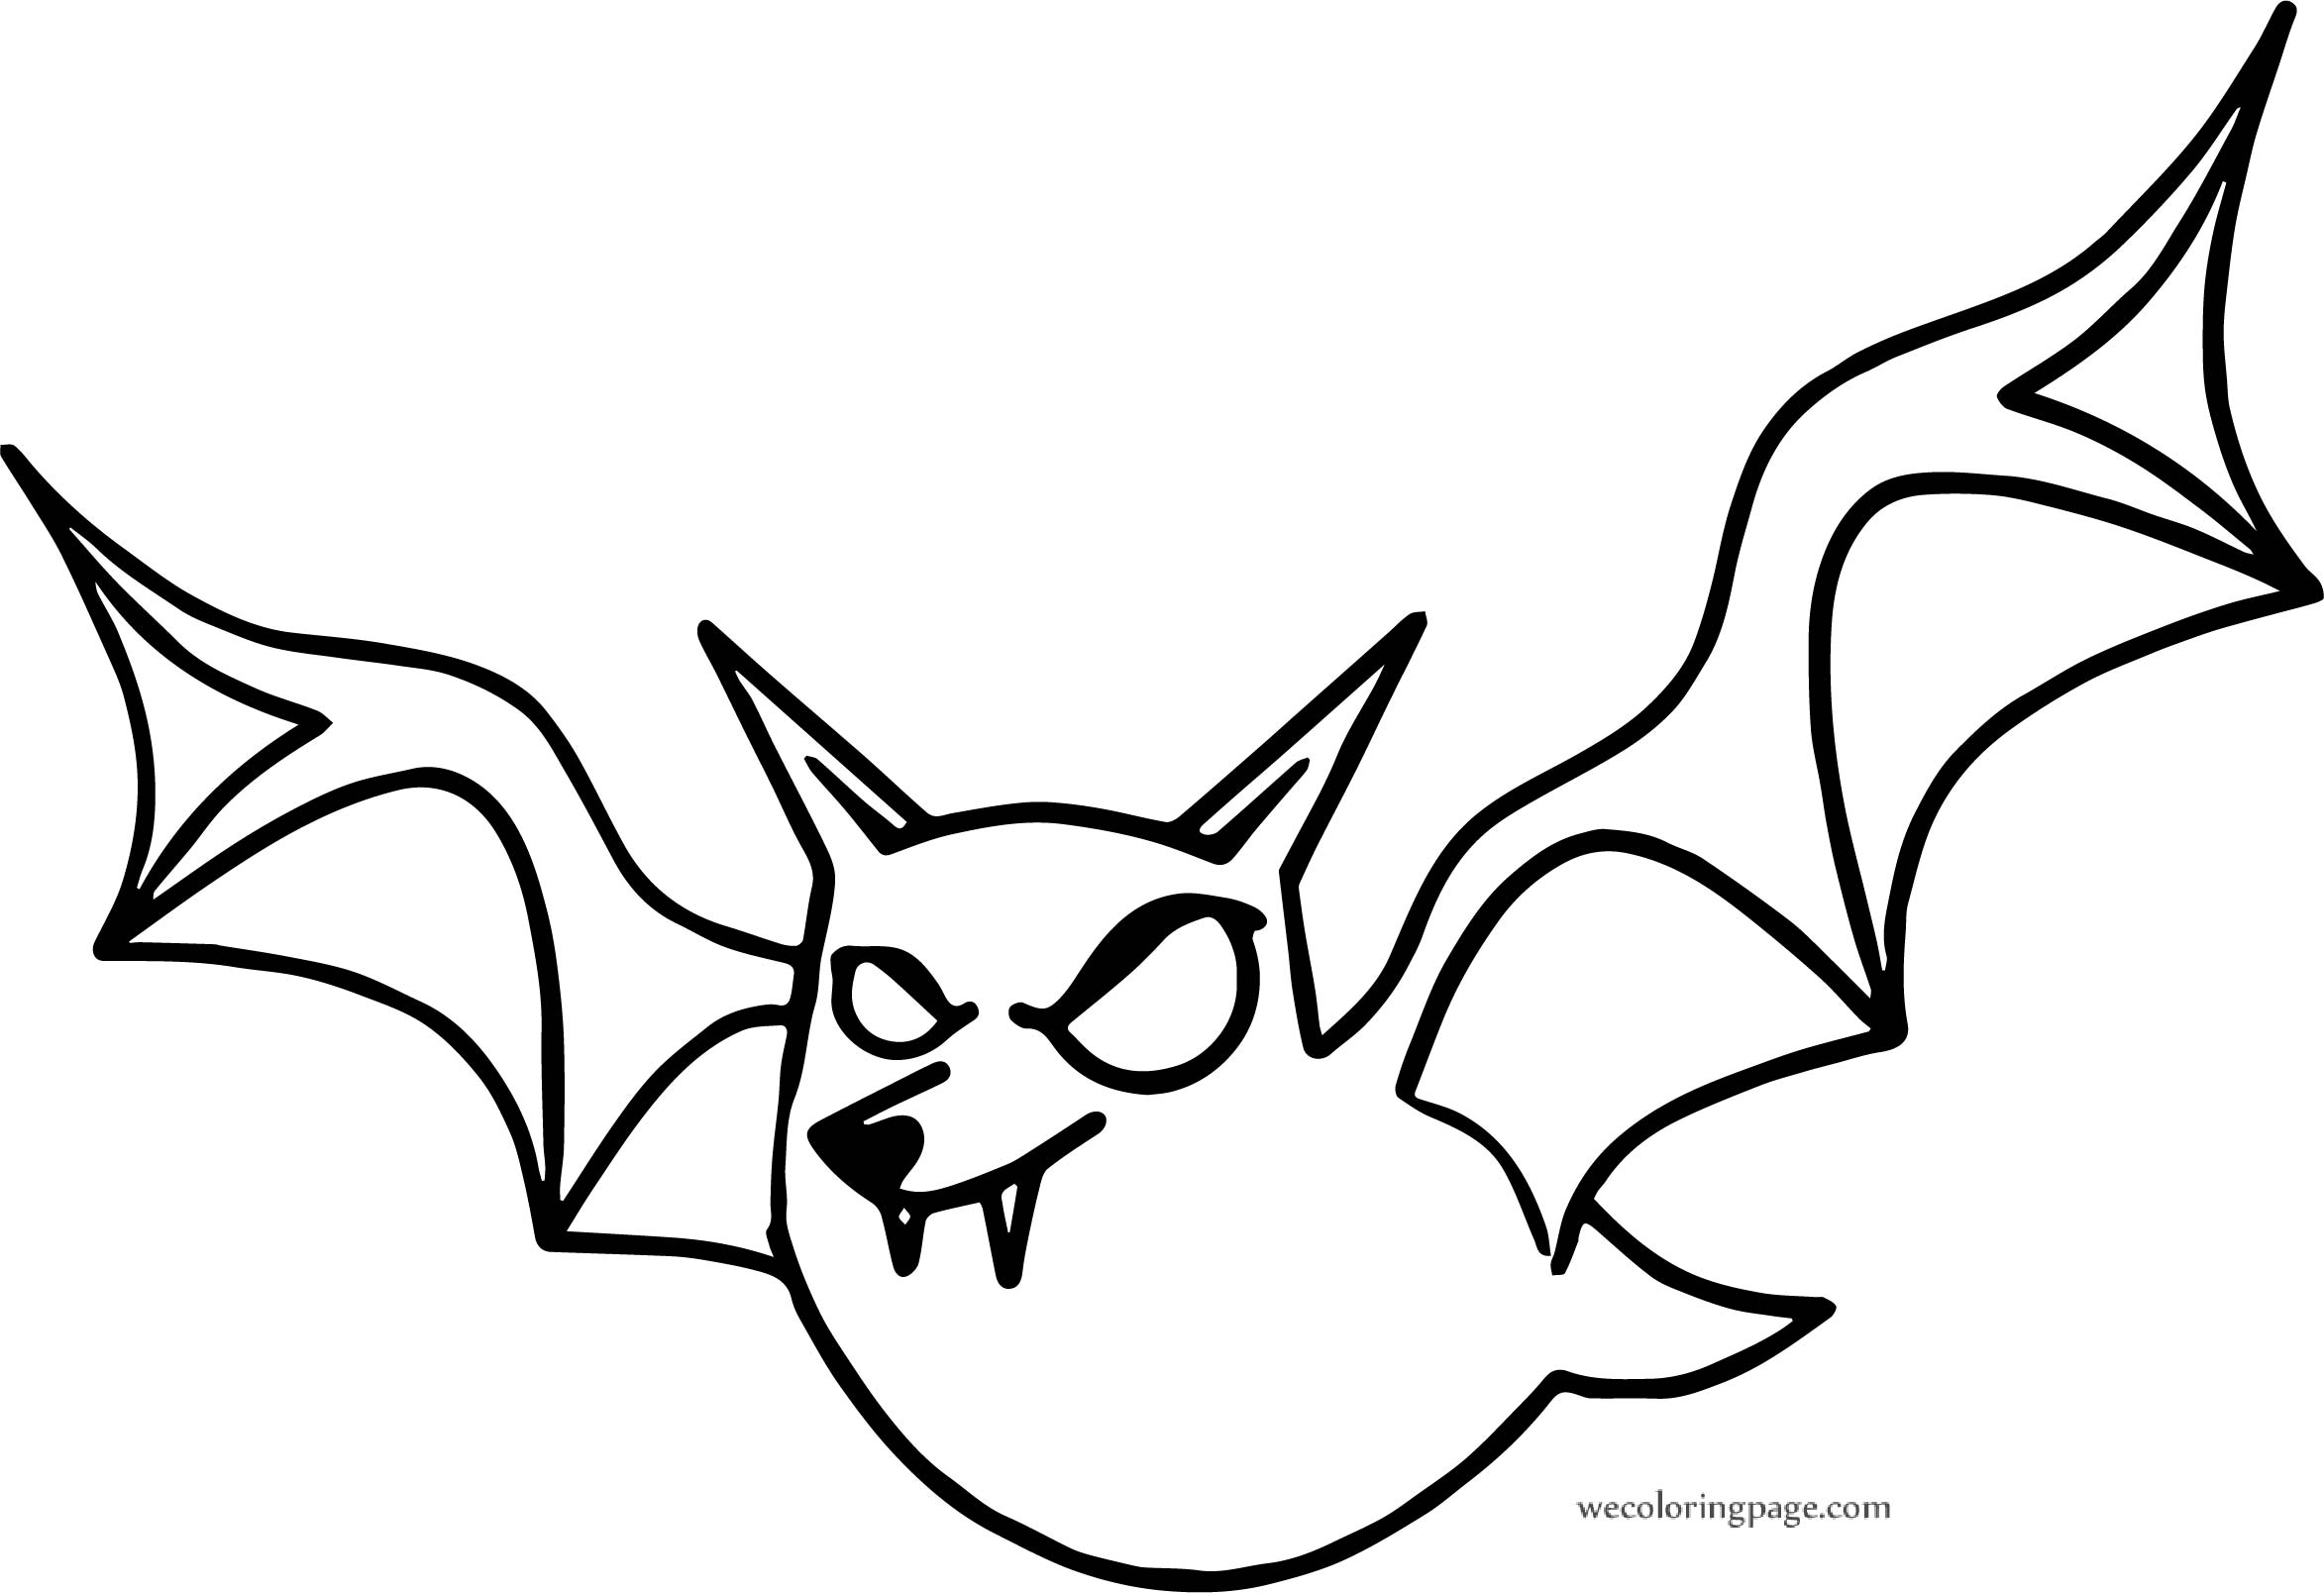 Ghost Bat Coloring Page